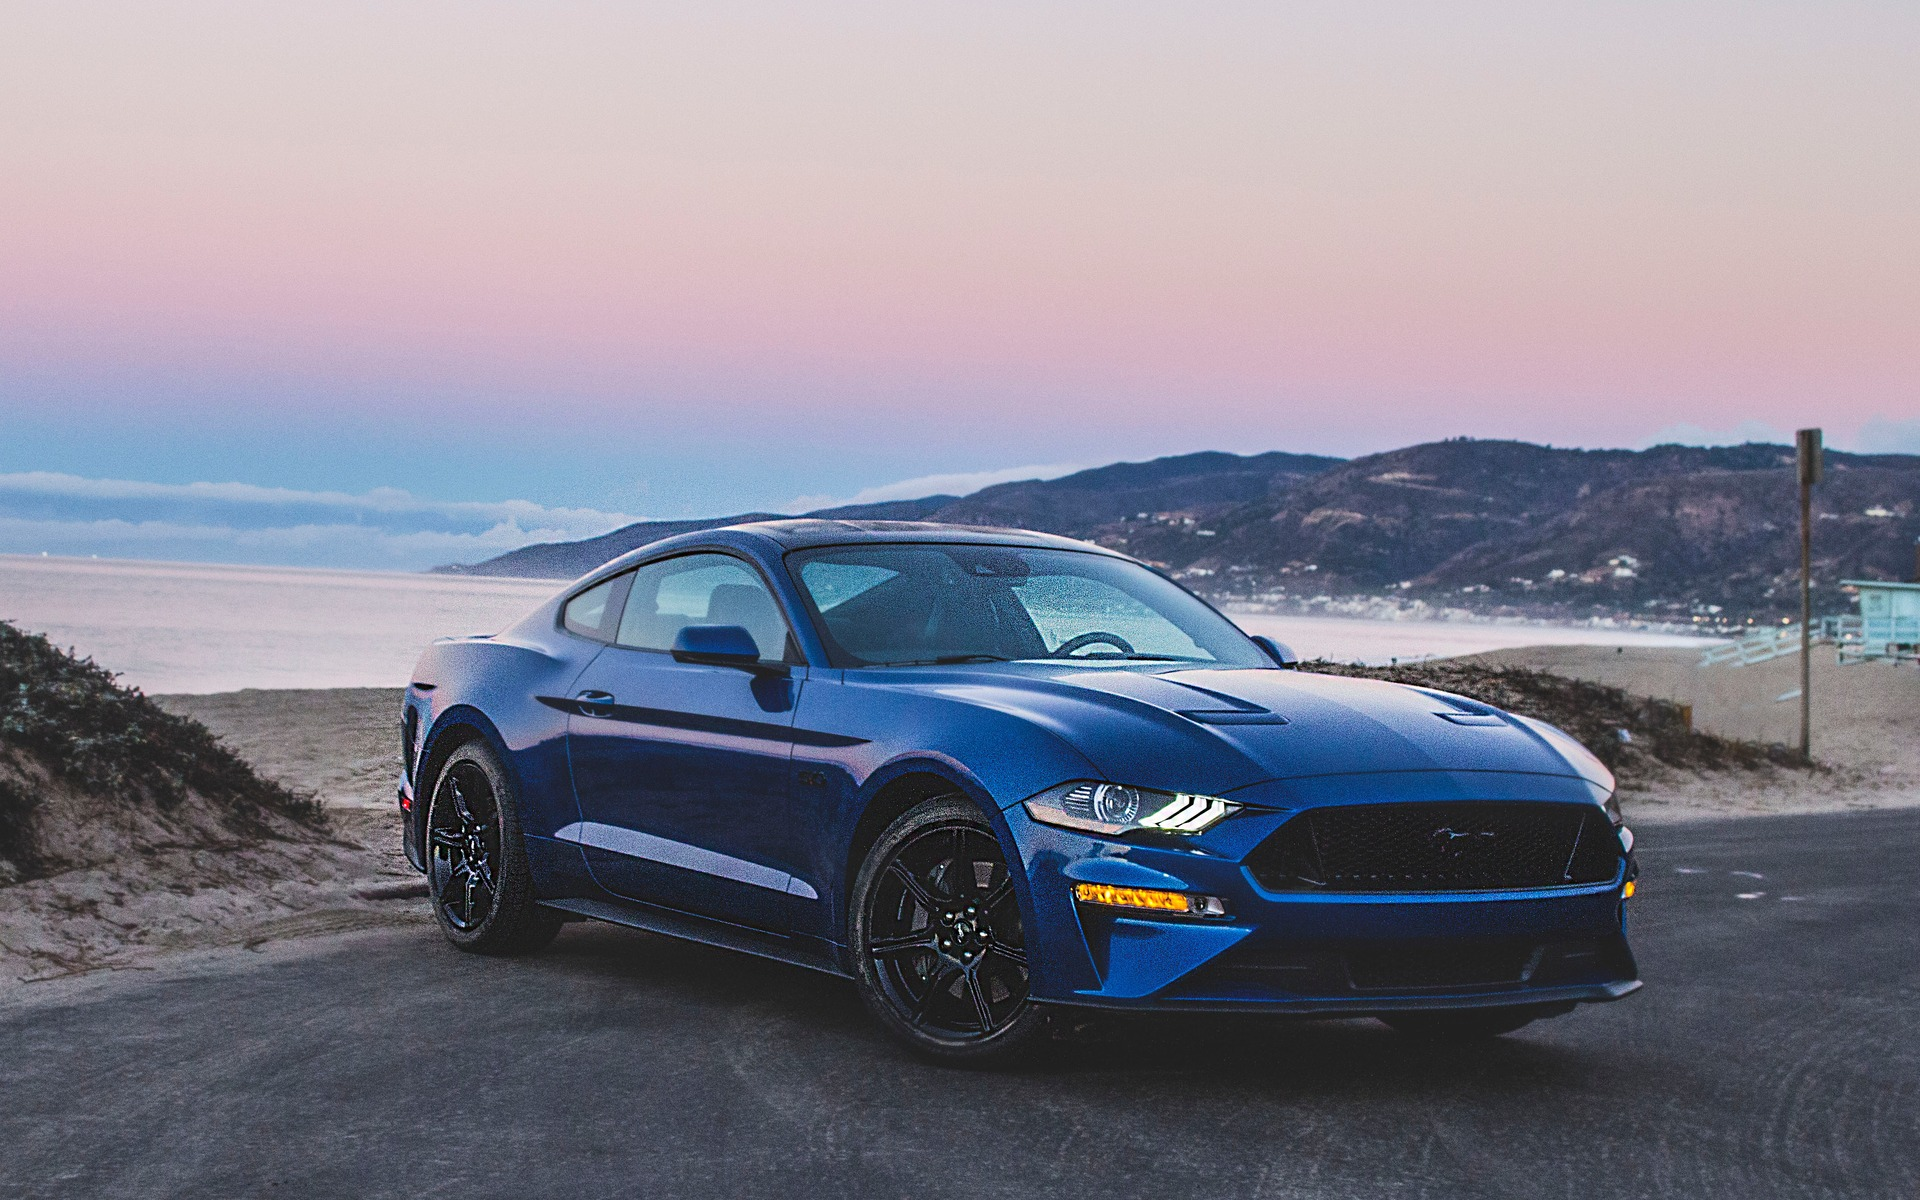 2020 Mustang Color Information